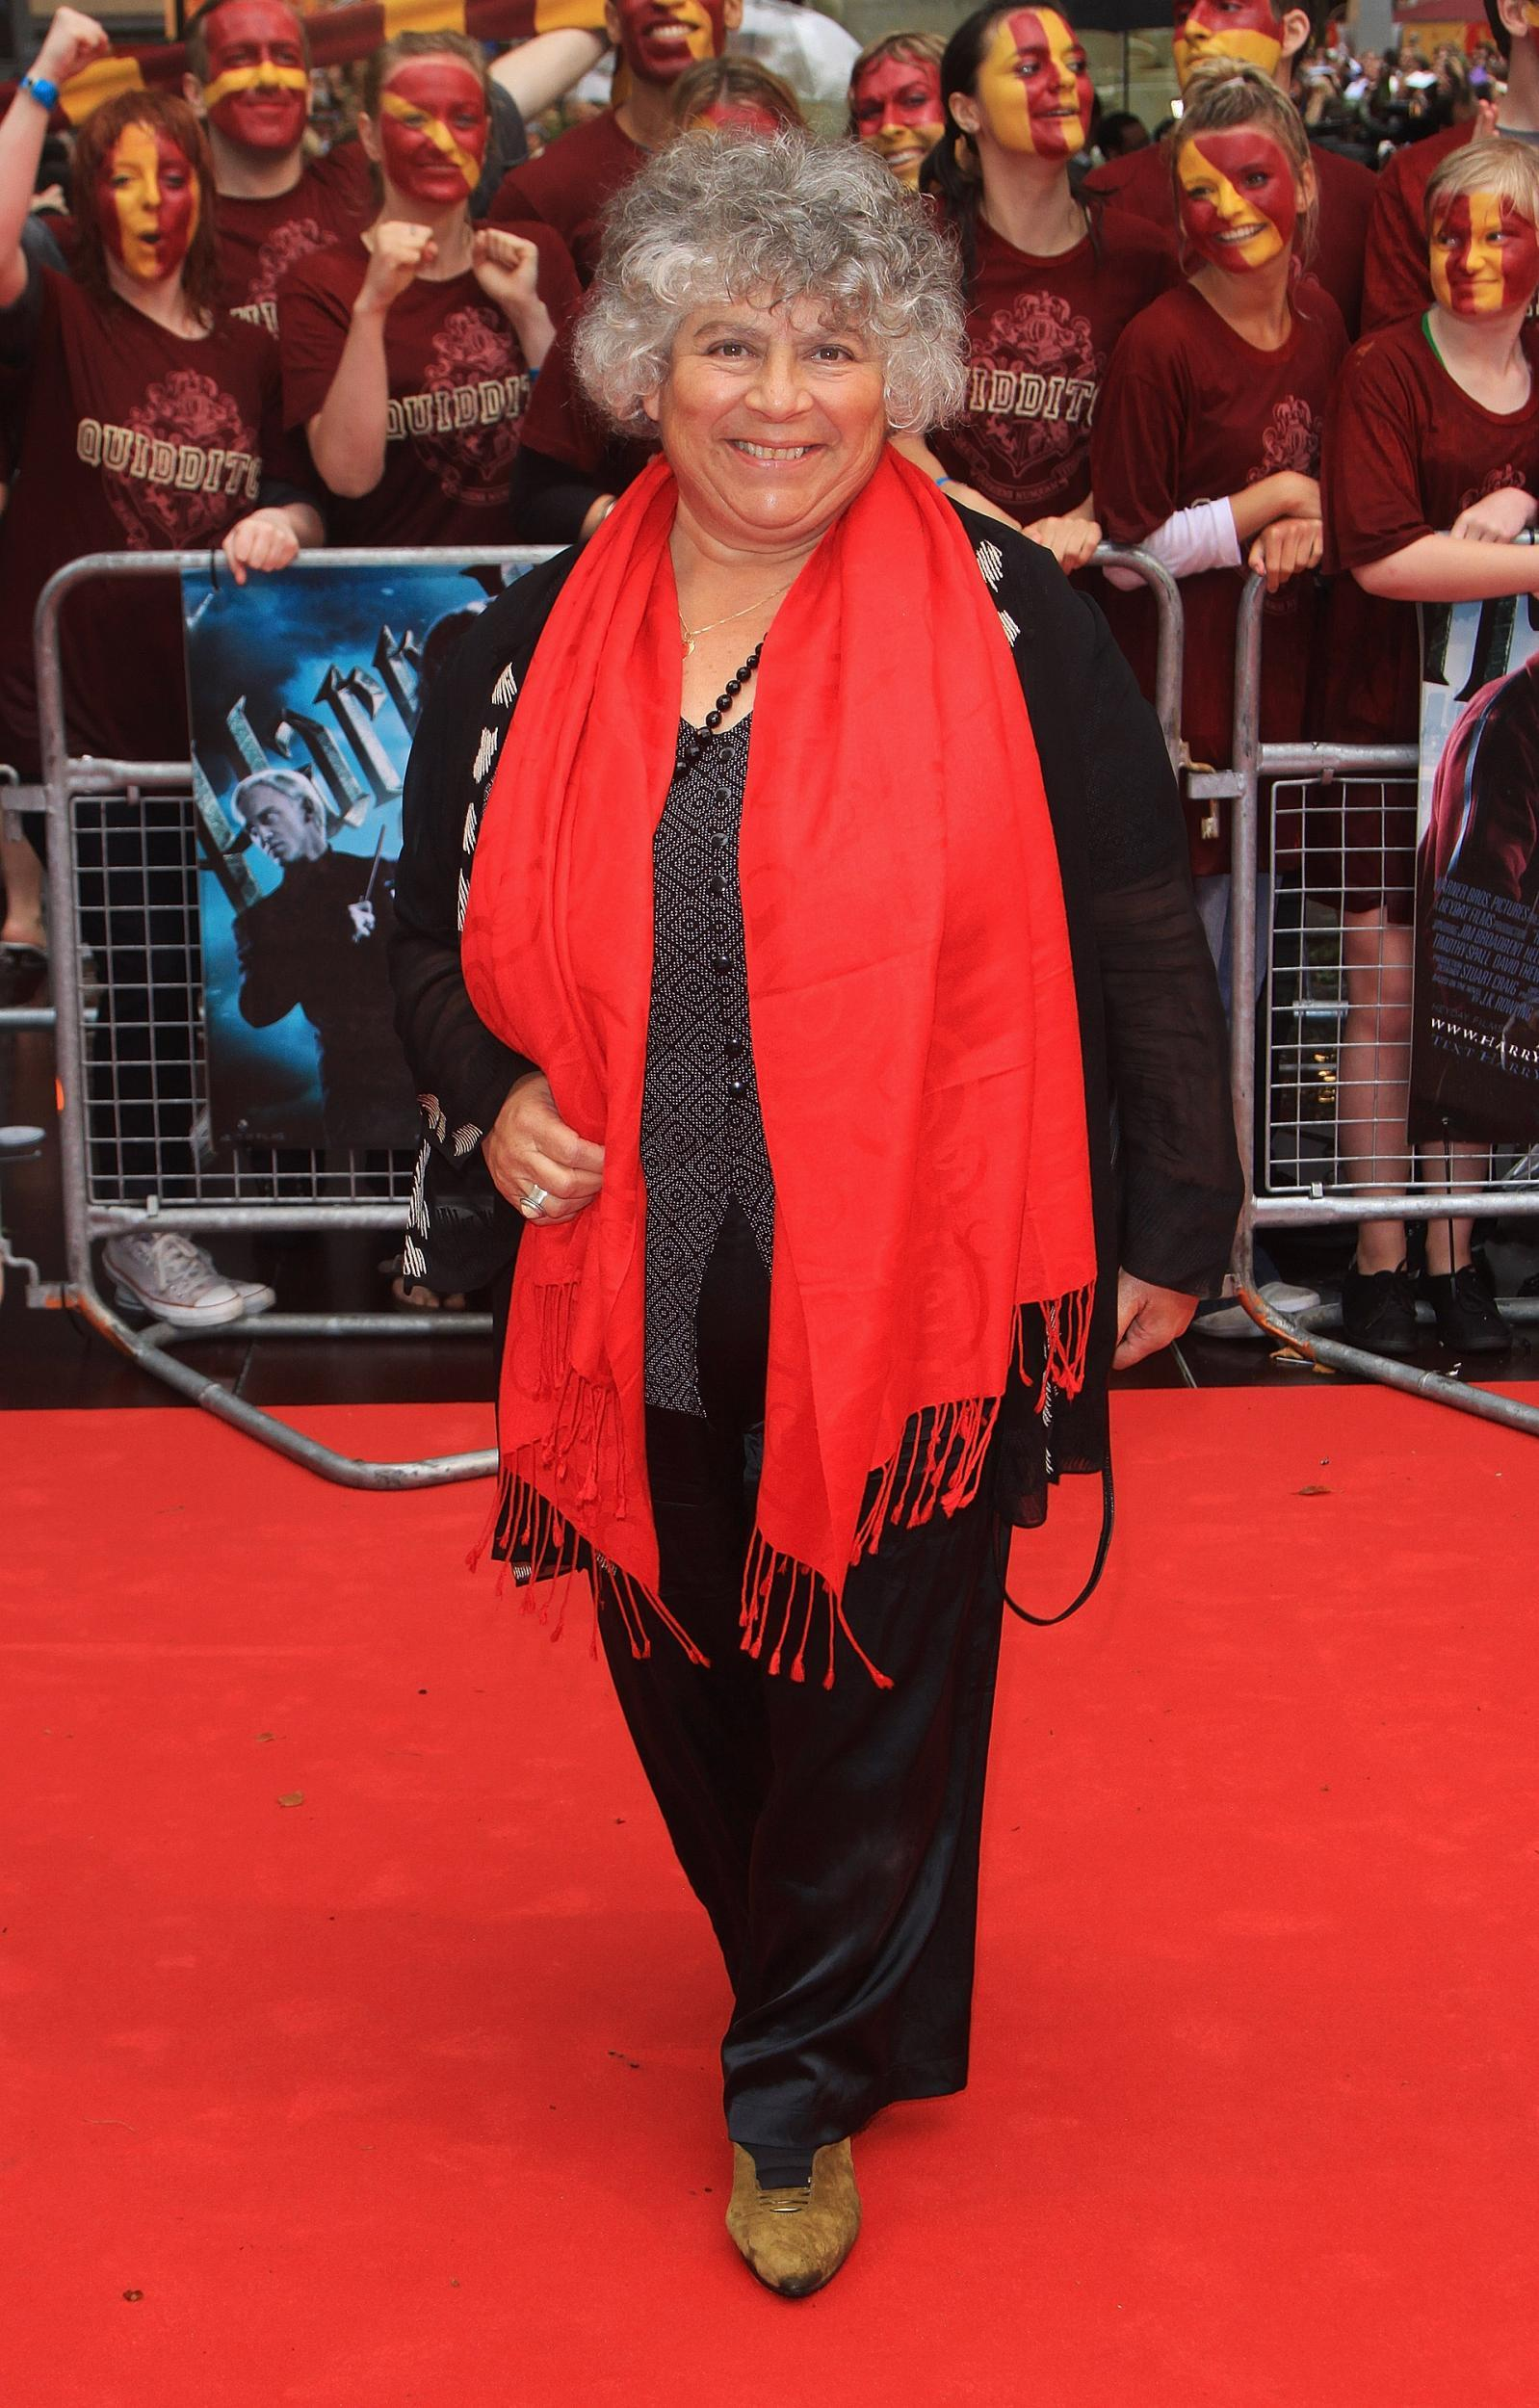 2ec960a6cdc5 Miriam Margolyes arrives for the World Premiere of Harry Potter And The Half  Blood Prince at Empire Leicester Square on 7 July 2009.